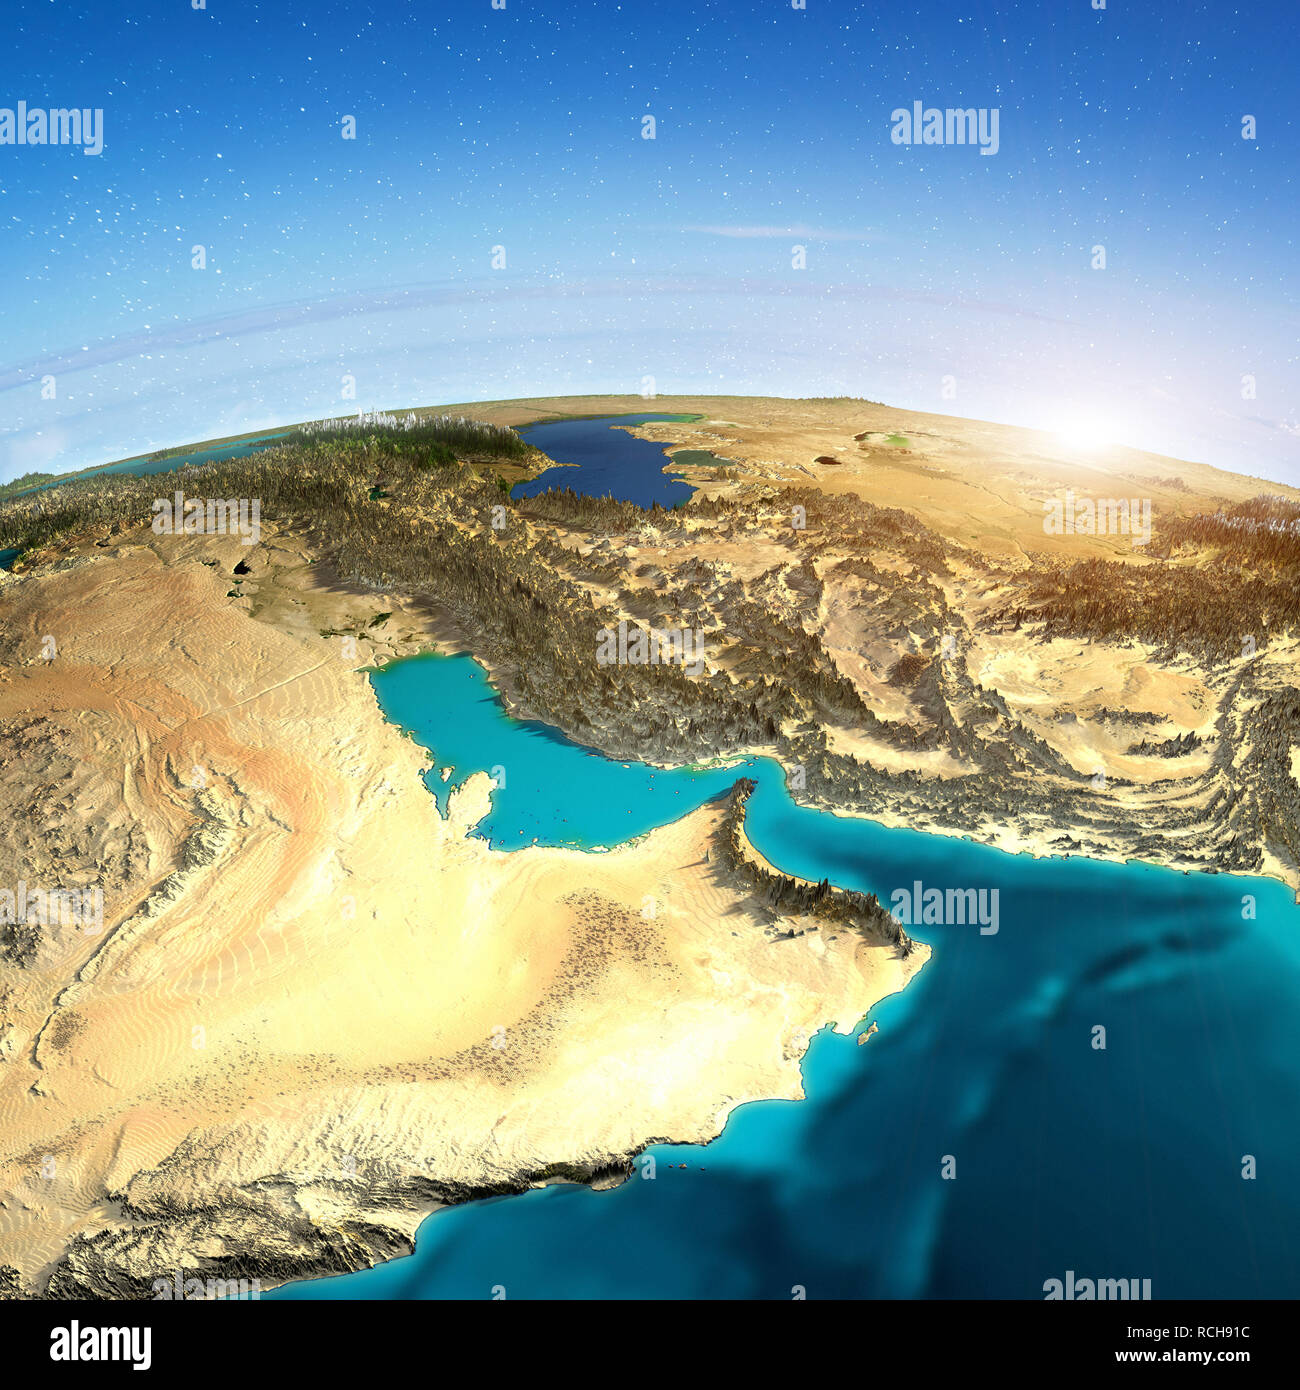 Middle East map - Stock Image